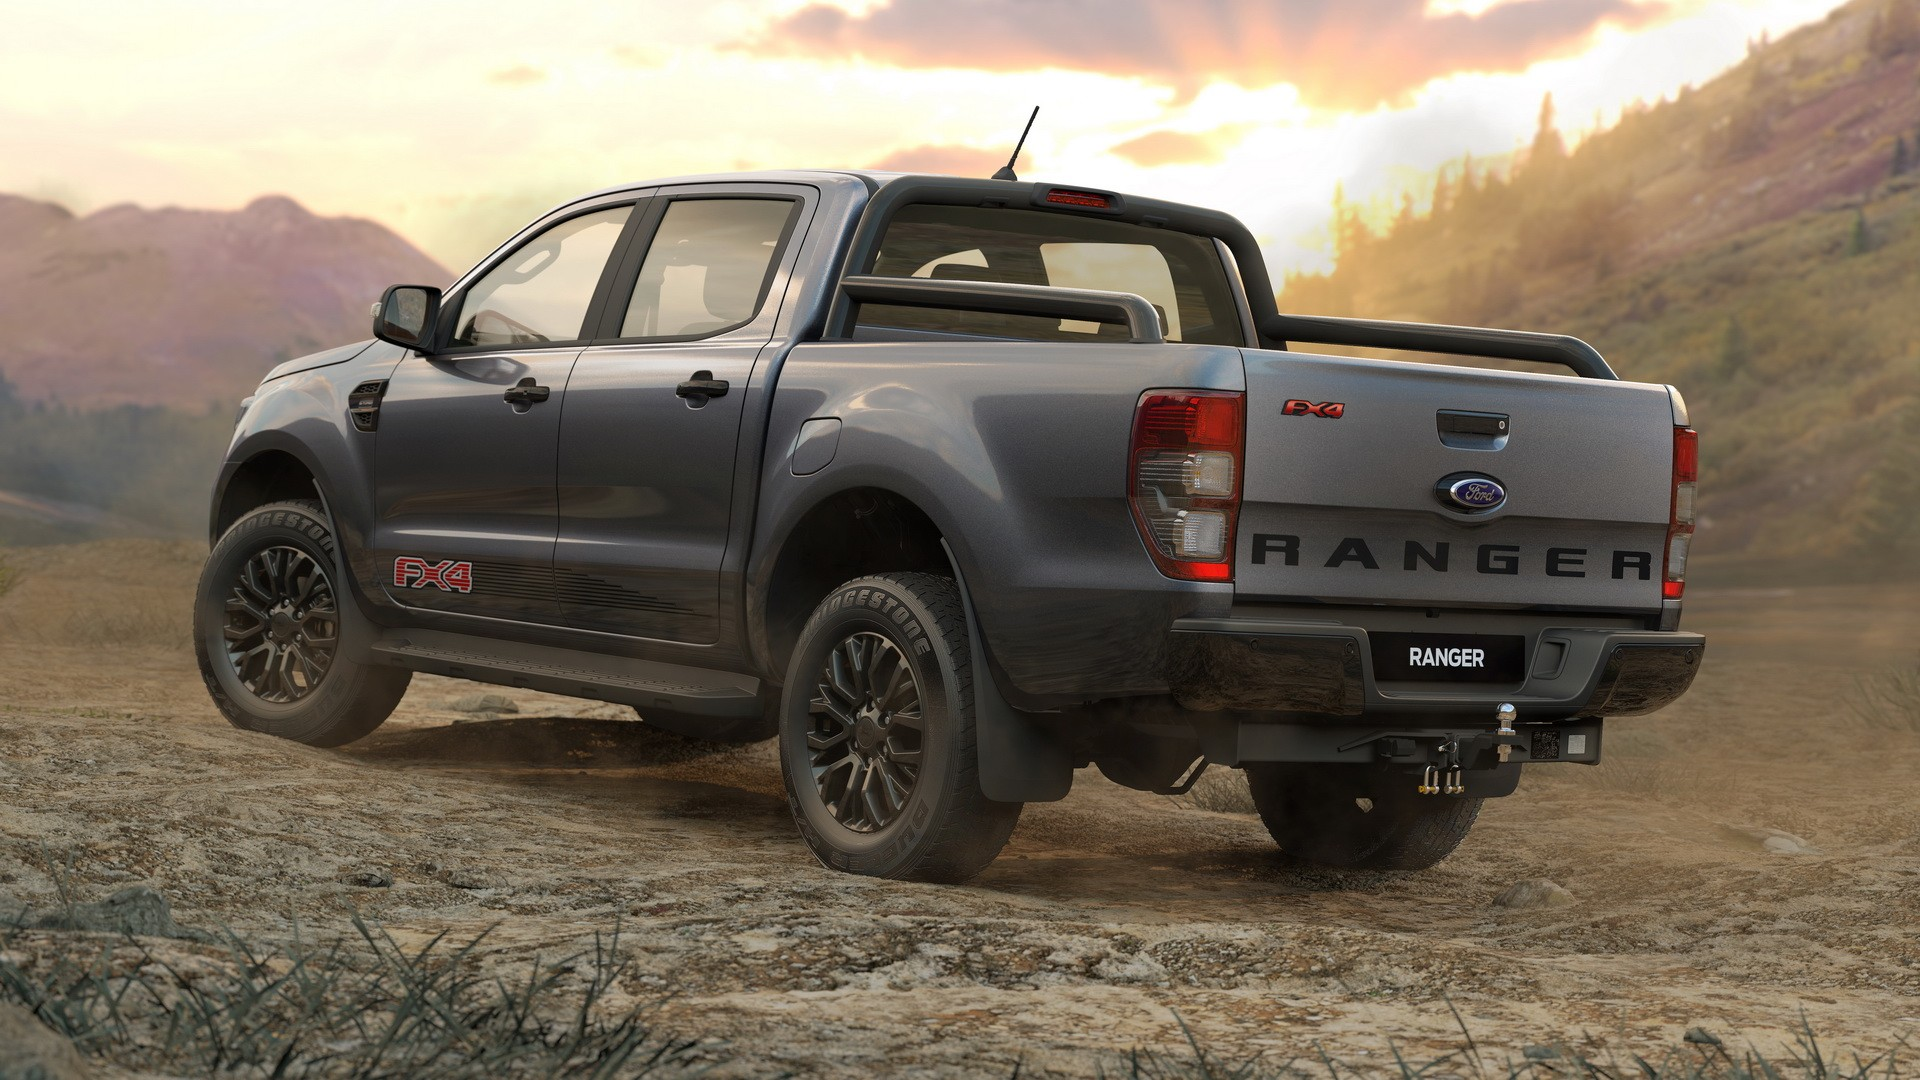 2020 ford ranger welcomes fx4 special edition in australia